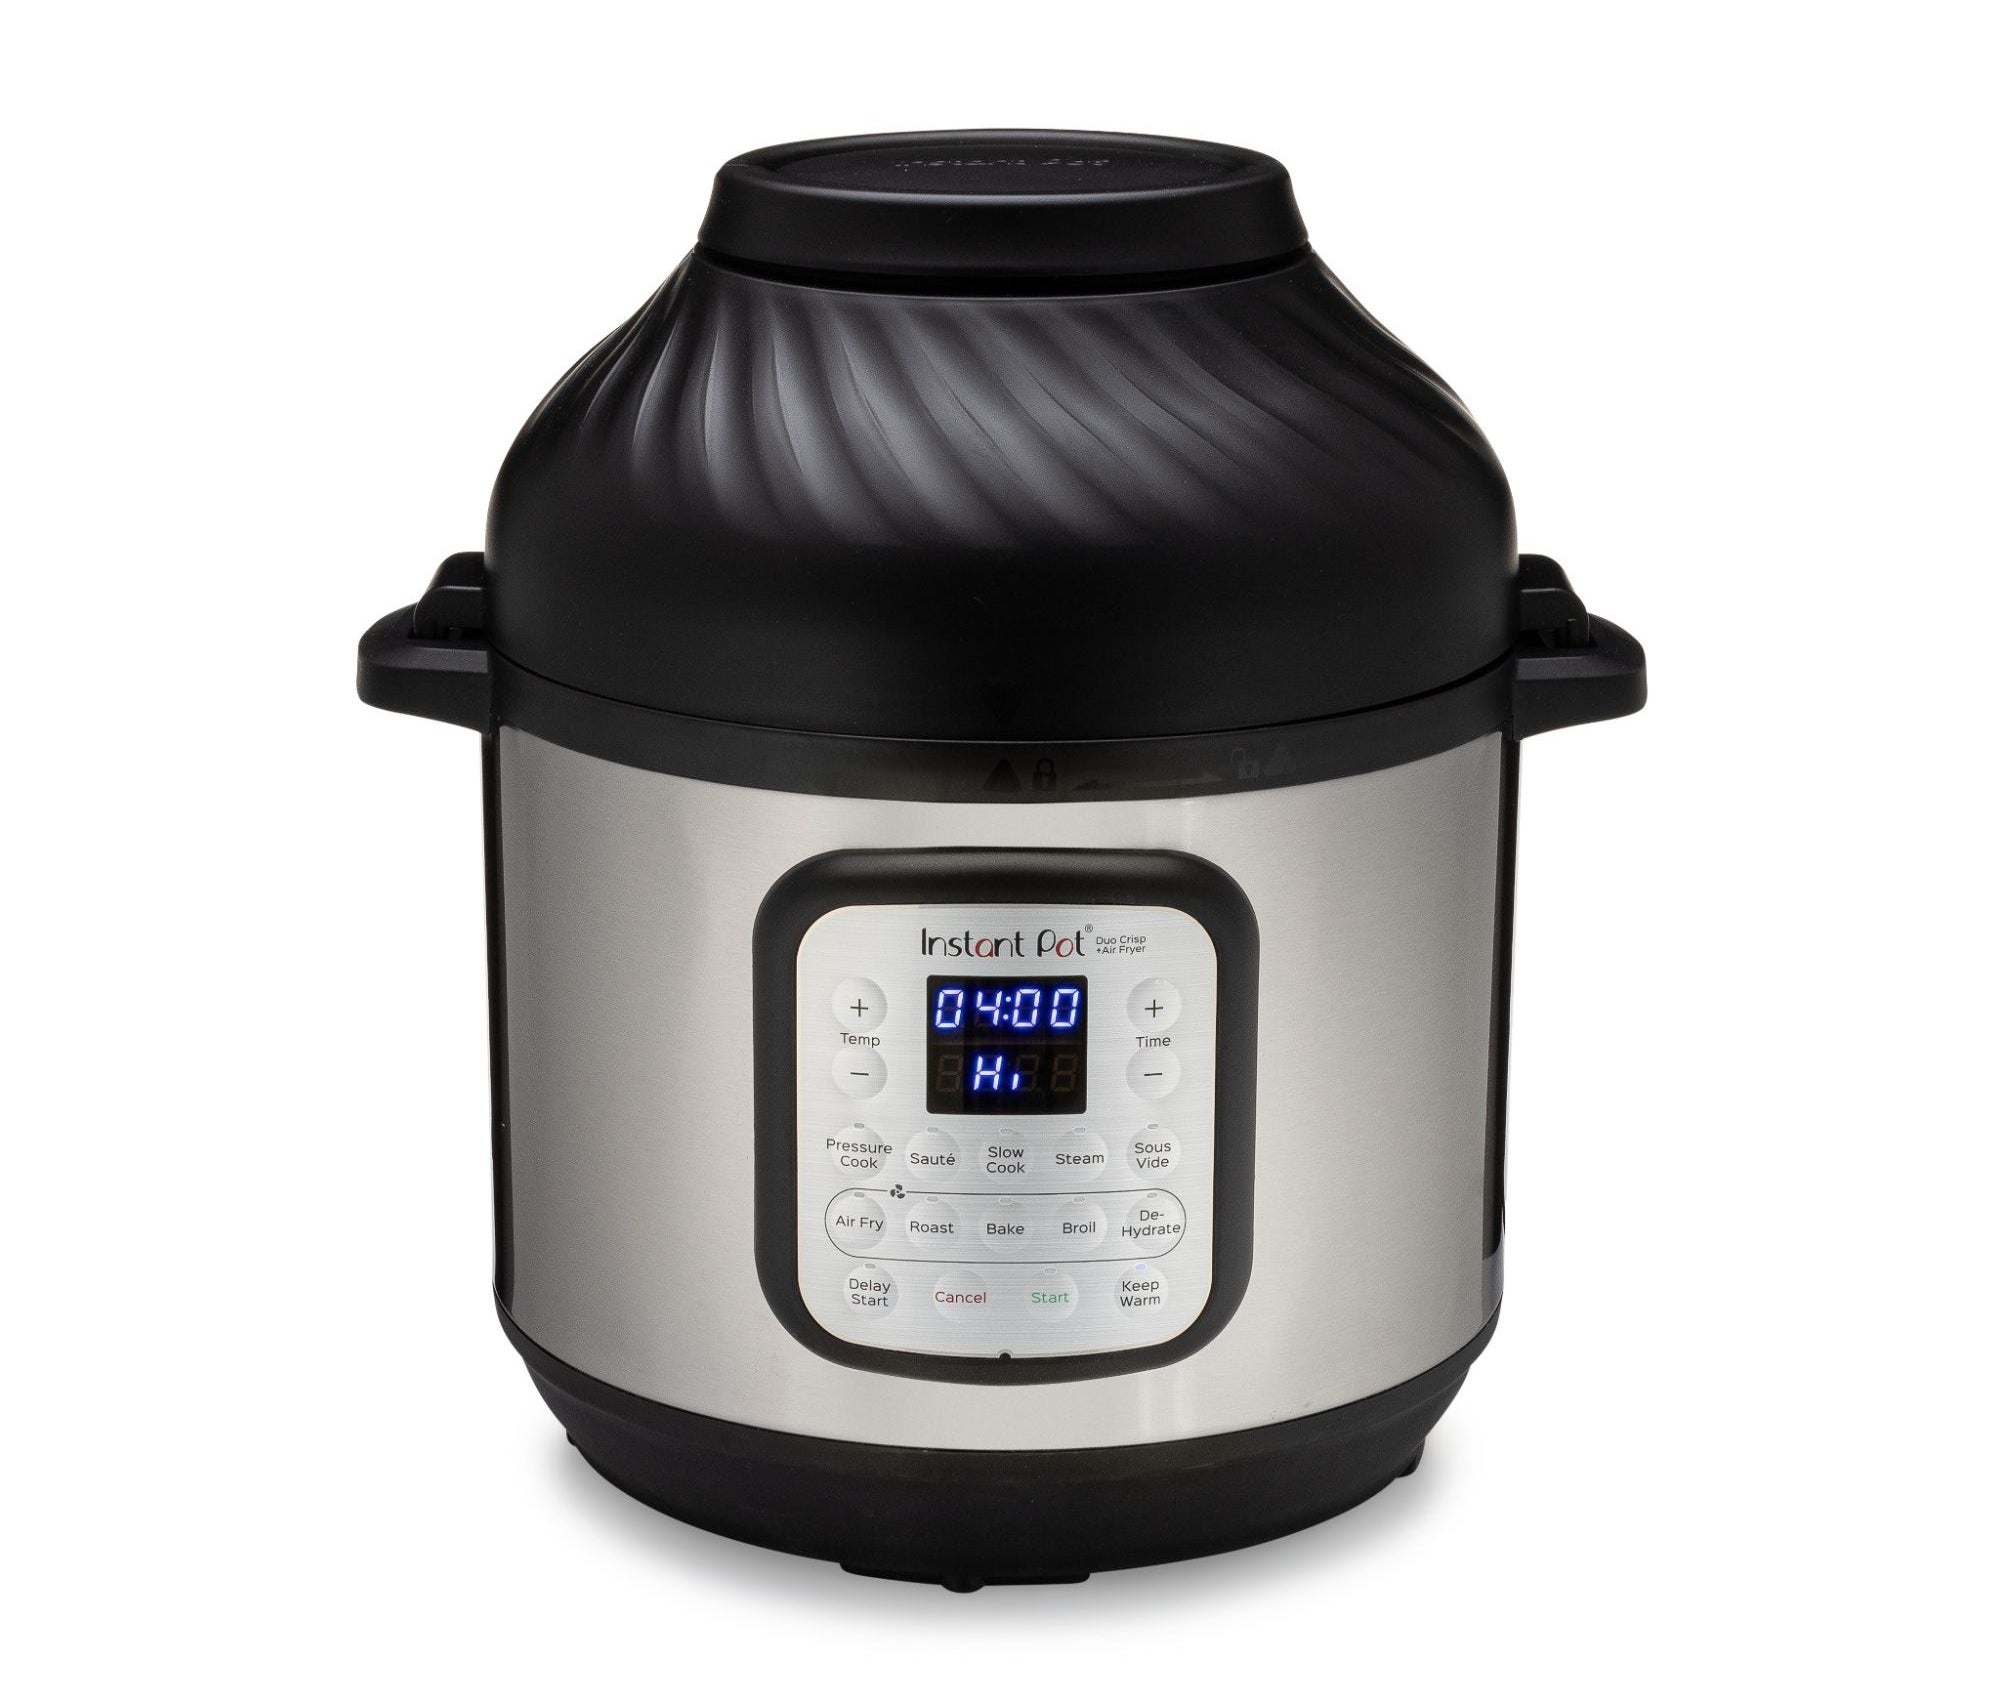 instant pot kitchen appliance with an air fryer top